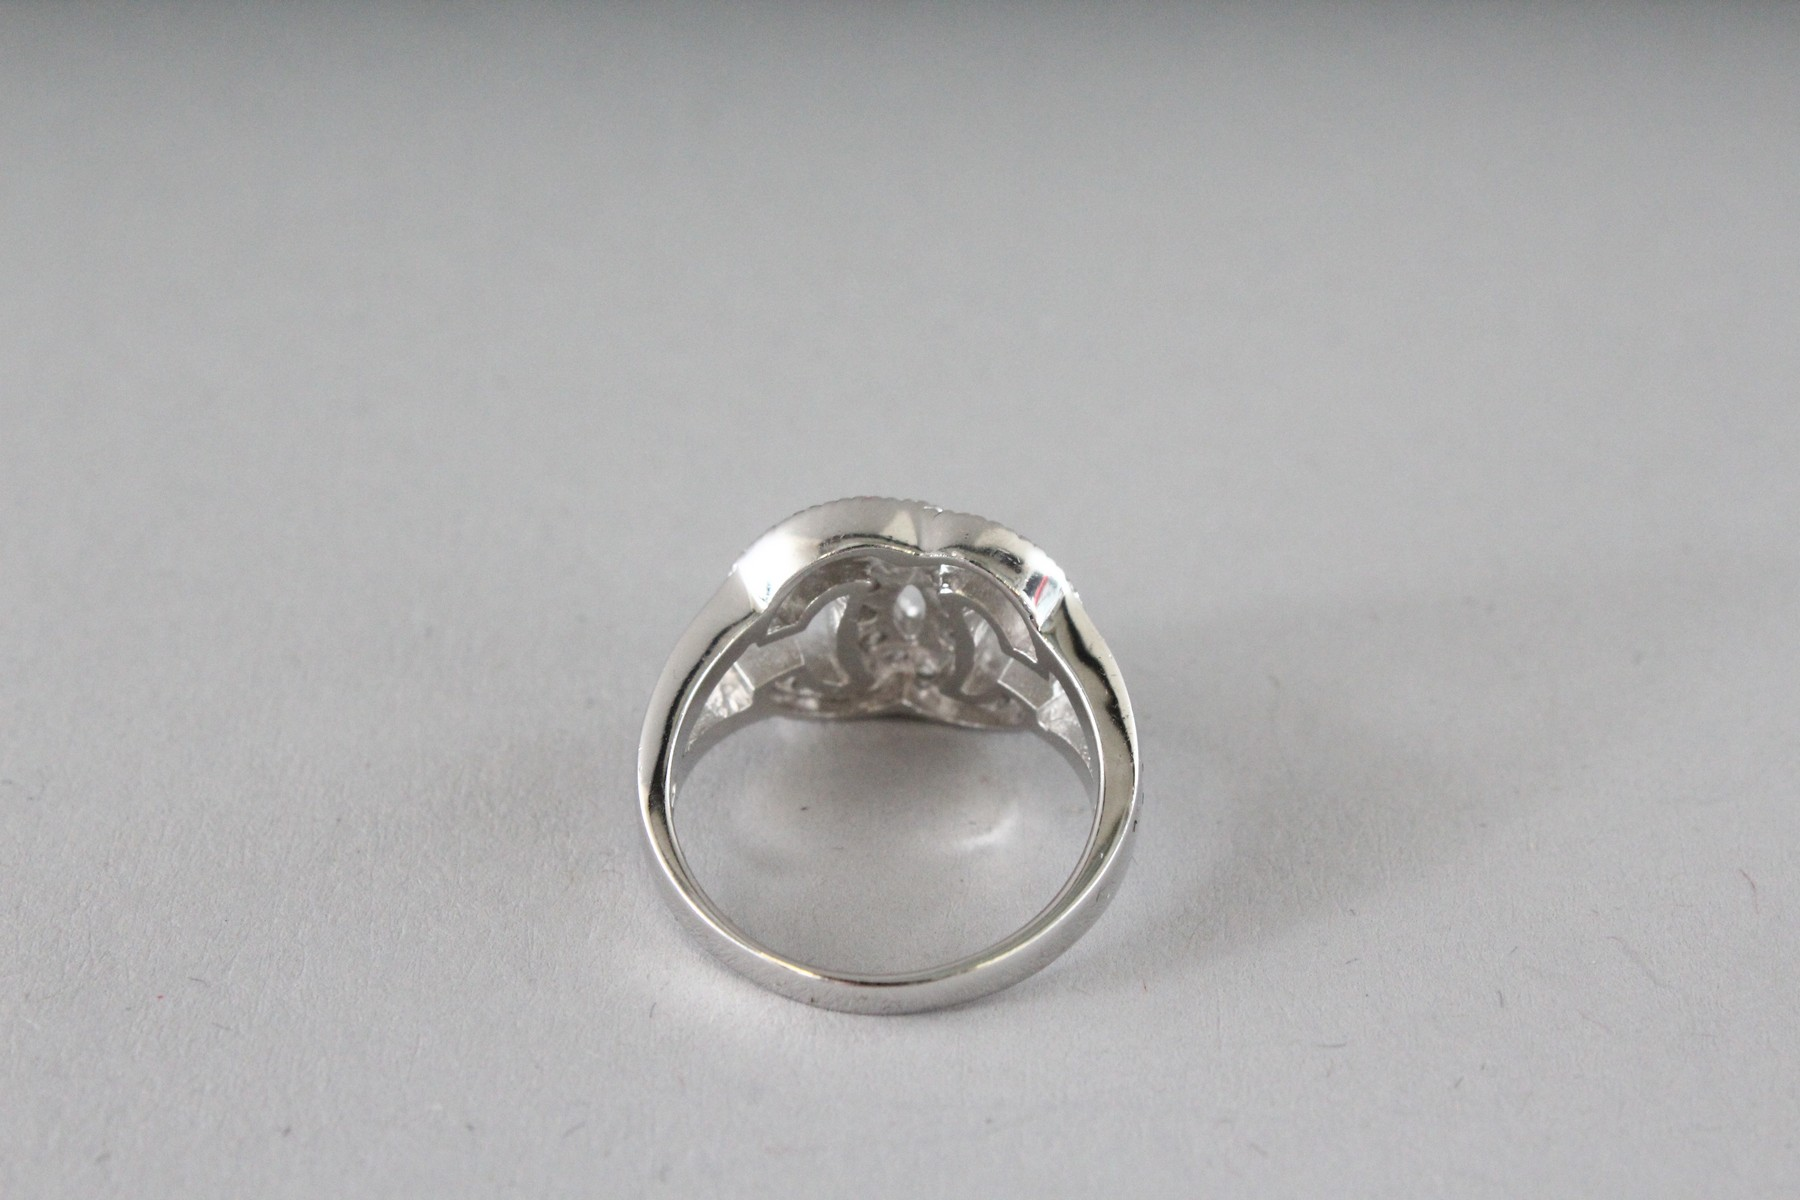 A CHANEL DESIGN SILVER AND CZ DOUBLE C RING. - Image 2 of 4